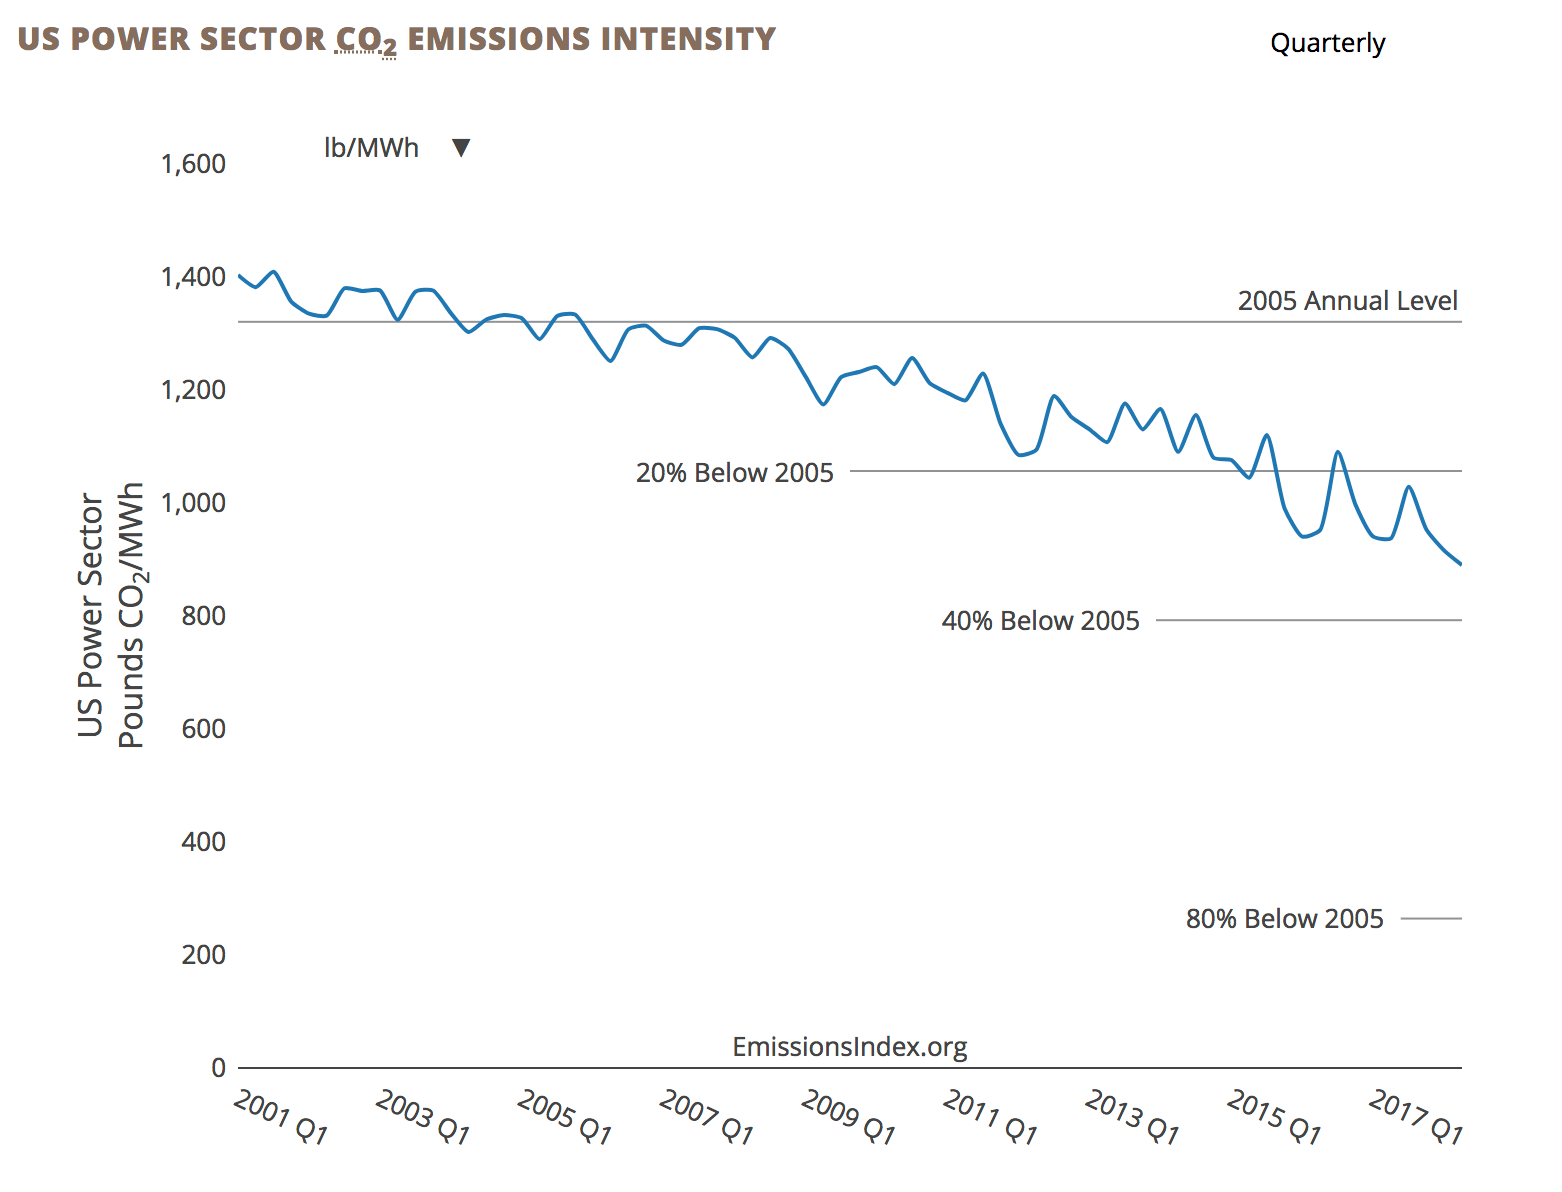 Chart showing the drop in U.S. power emissions intensity